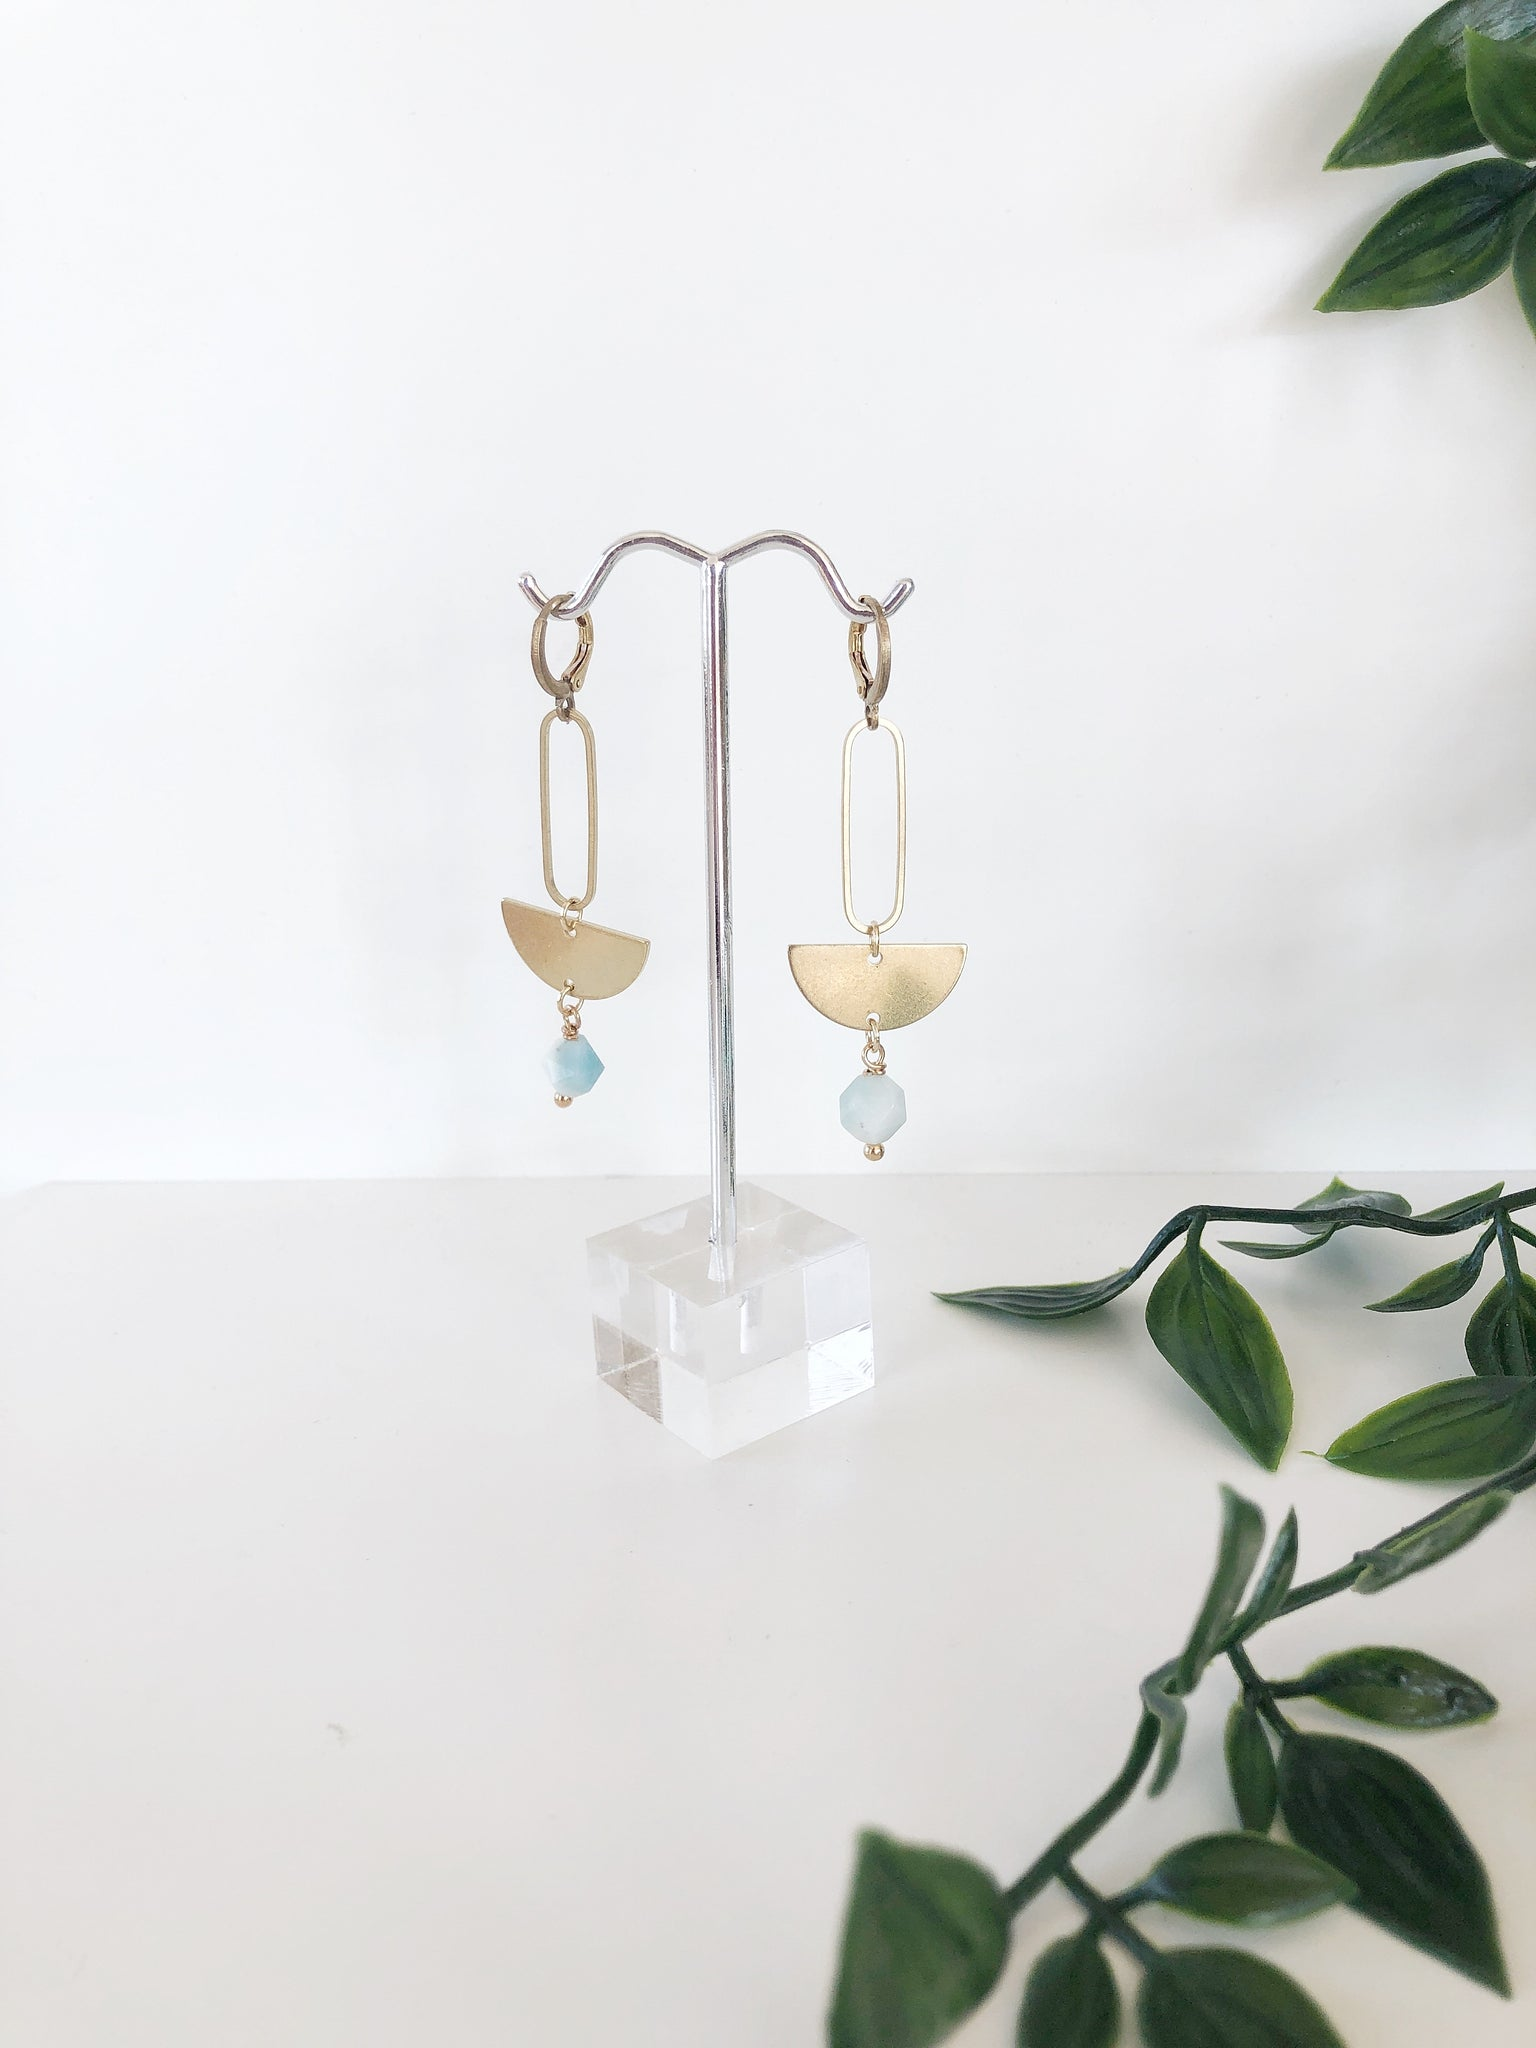 Persys Half Moon + Amazonite Earrings - Aurora Lux Jewellery